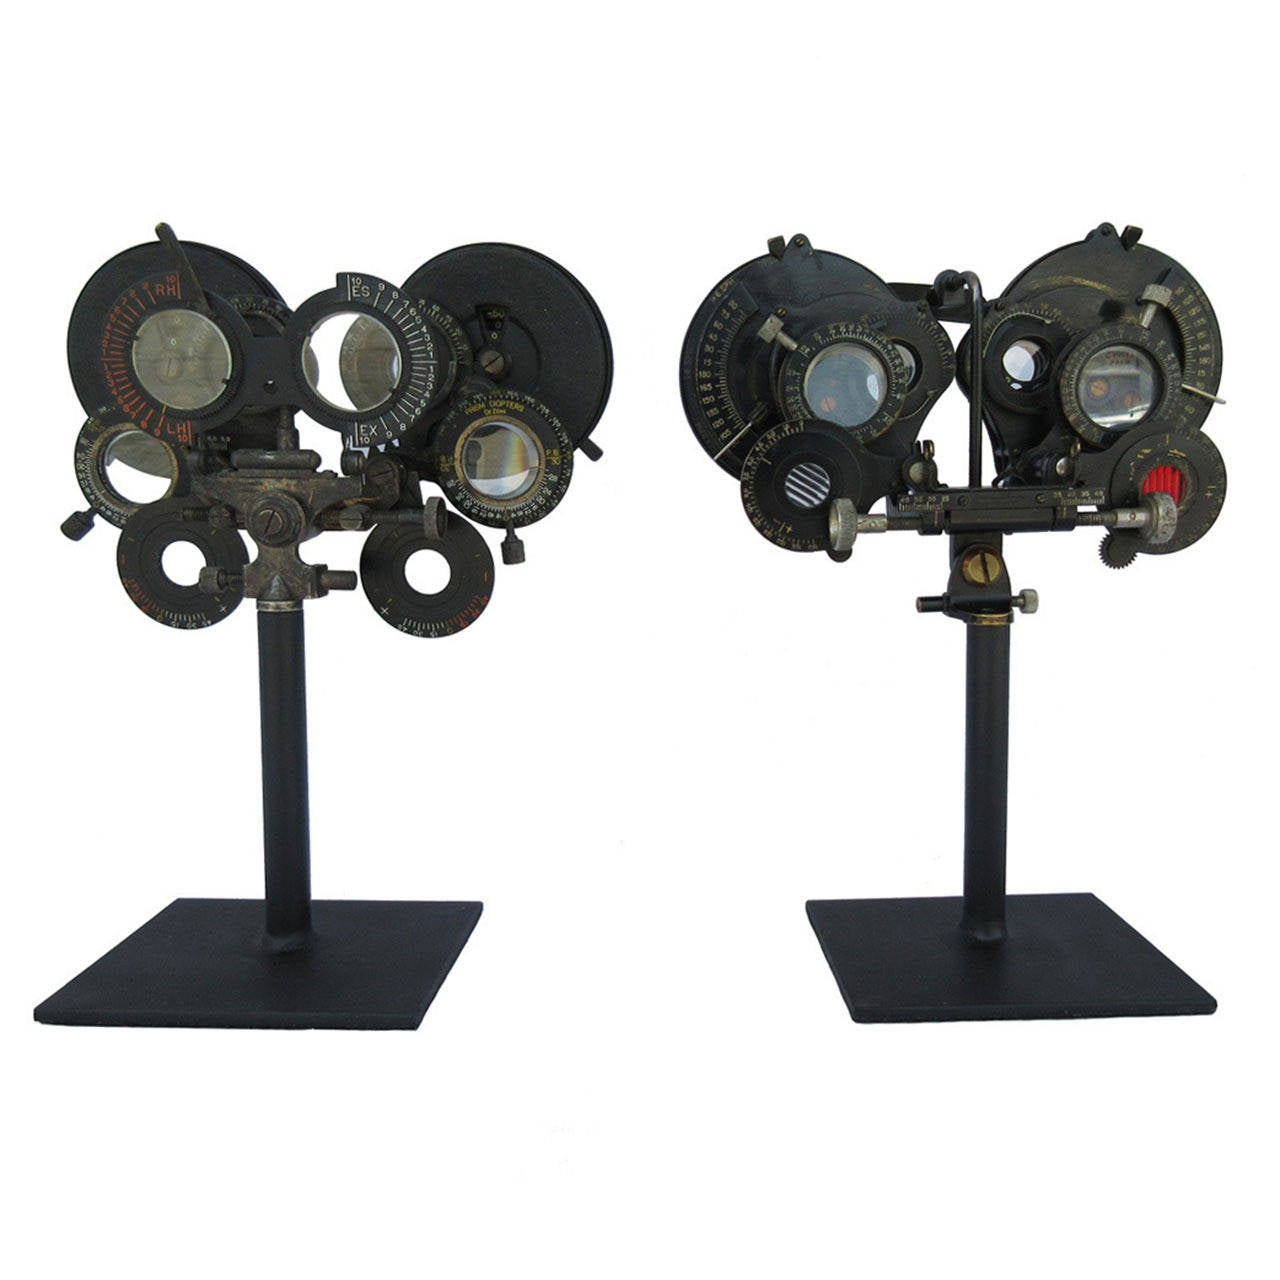 Pair Of Optometrist Eye Testing Scopes Circa 1900 At 1stdibs